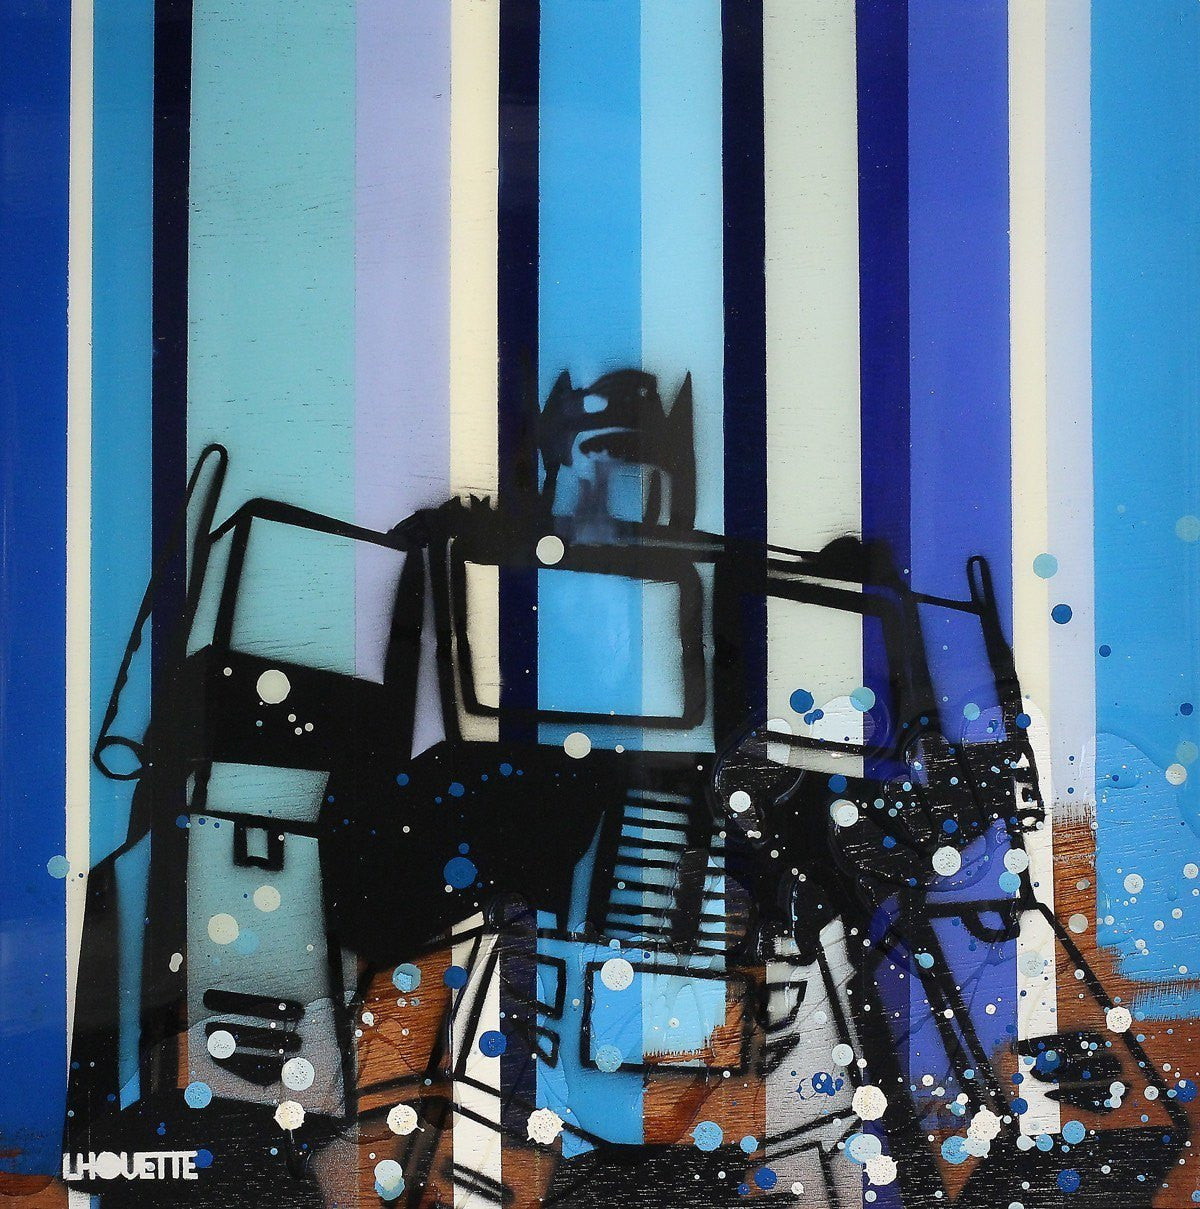 Colour Crate - Optimus Prime - SOLD Lhouette